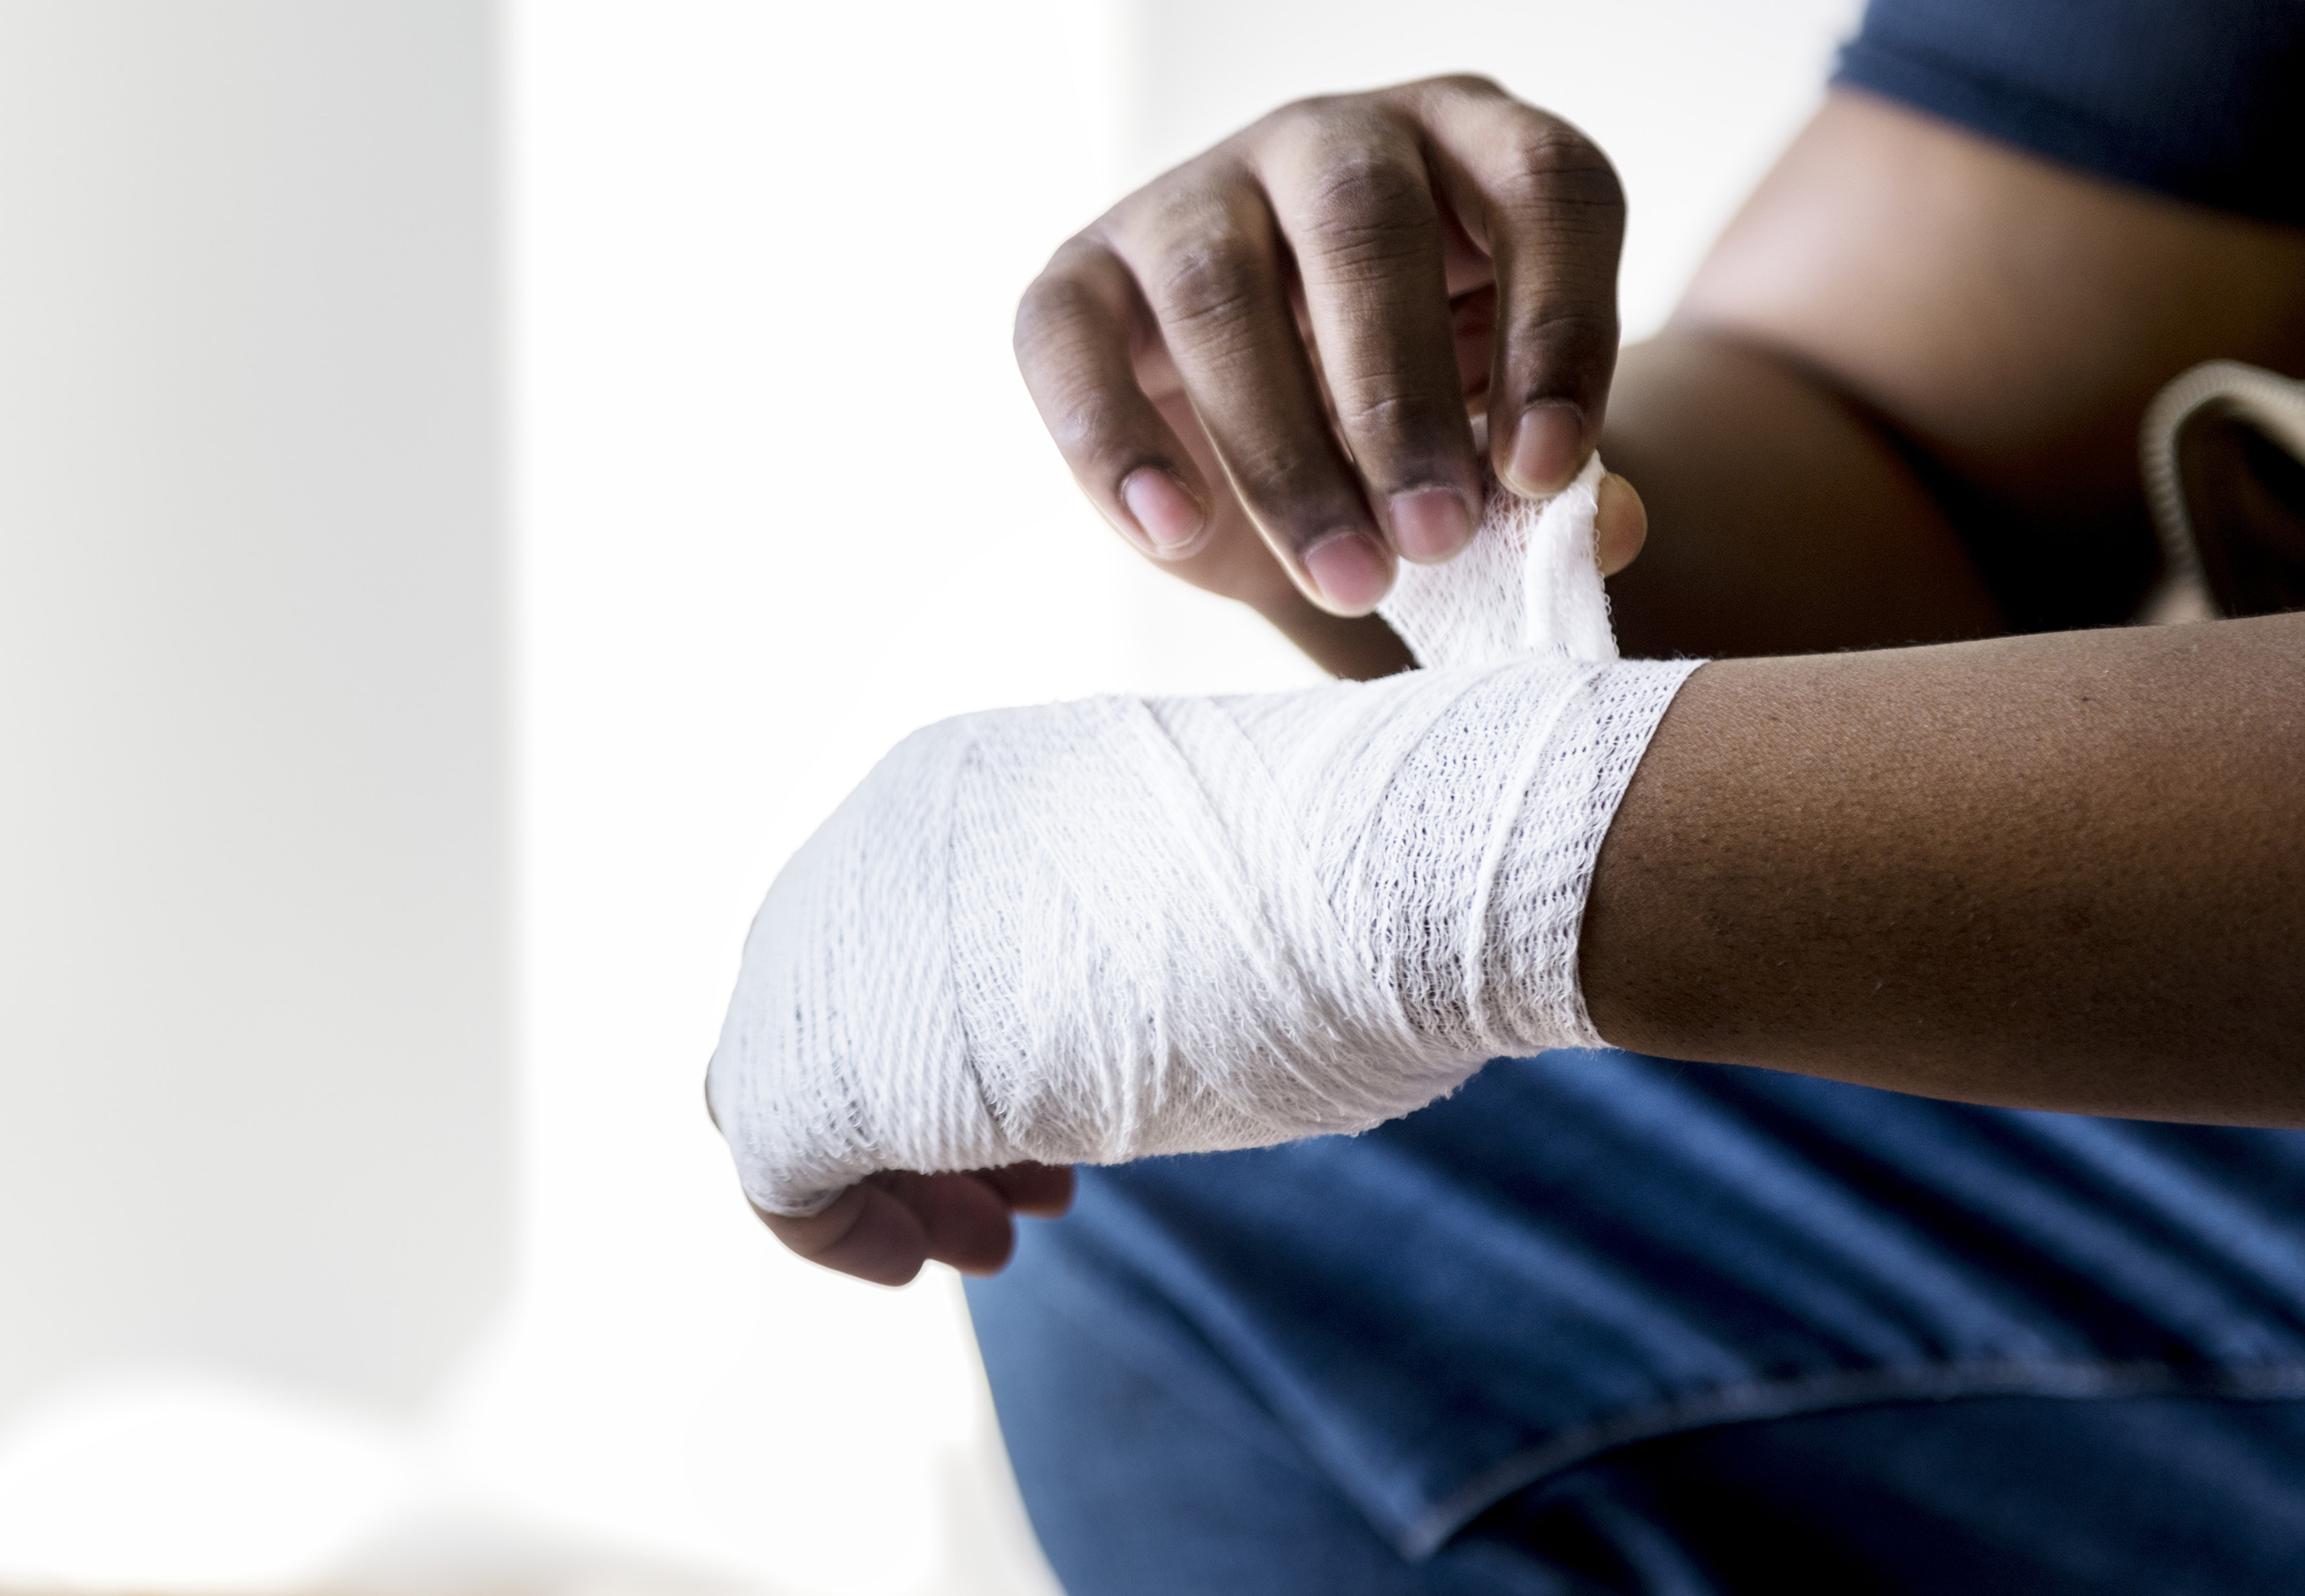 An individual wrapping his hand after sustaining an injury